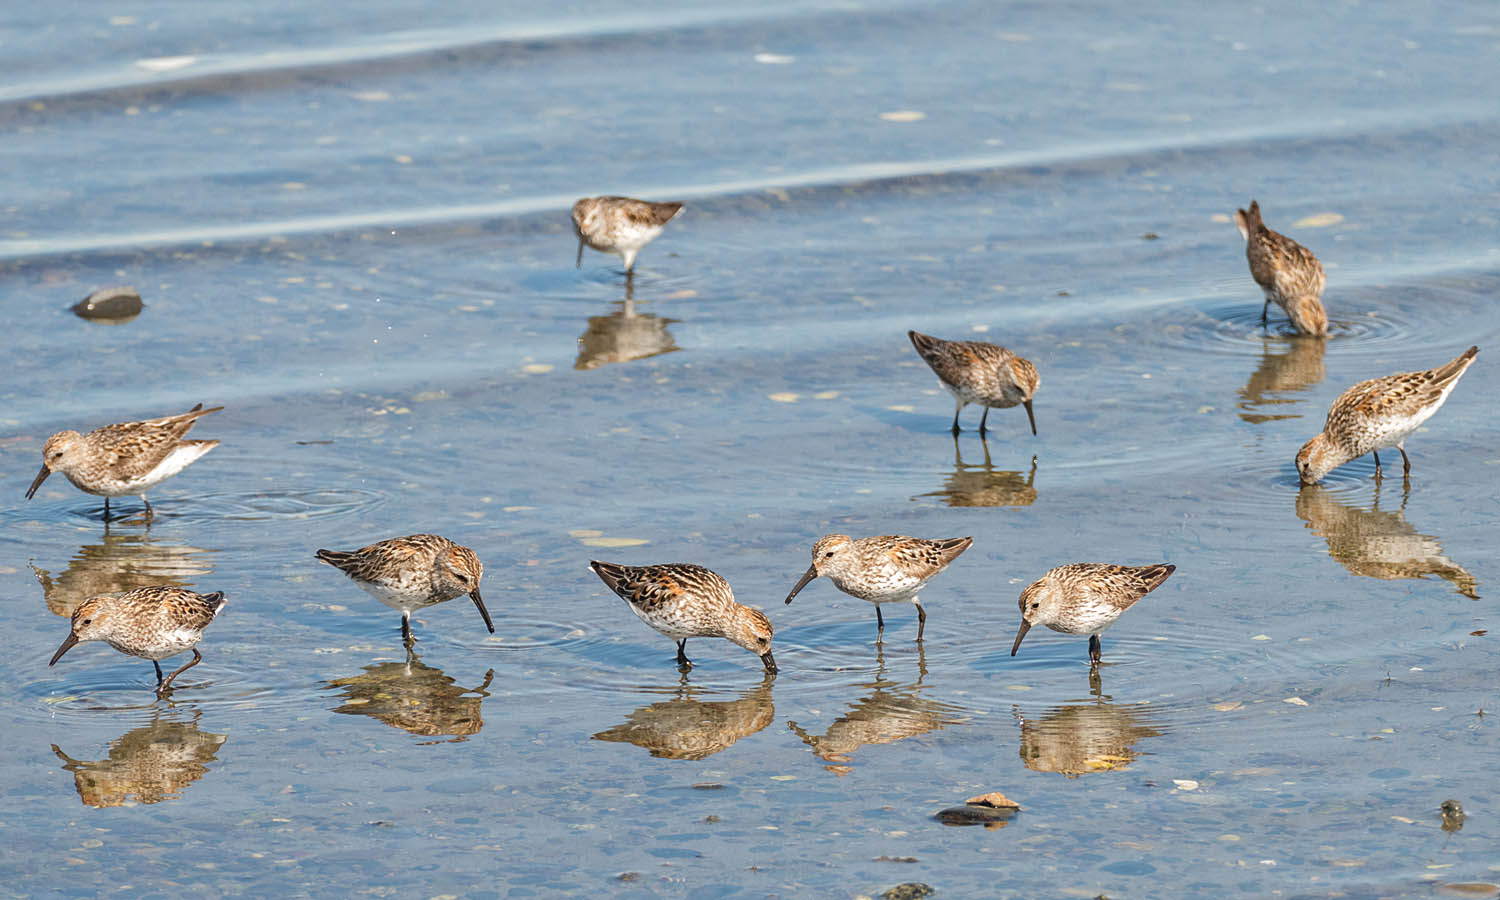 A group of Western Sandpipers feeding.